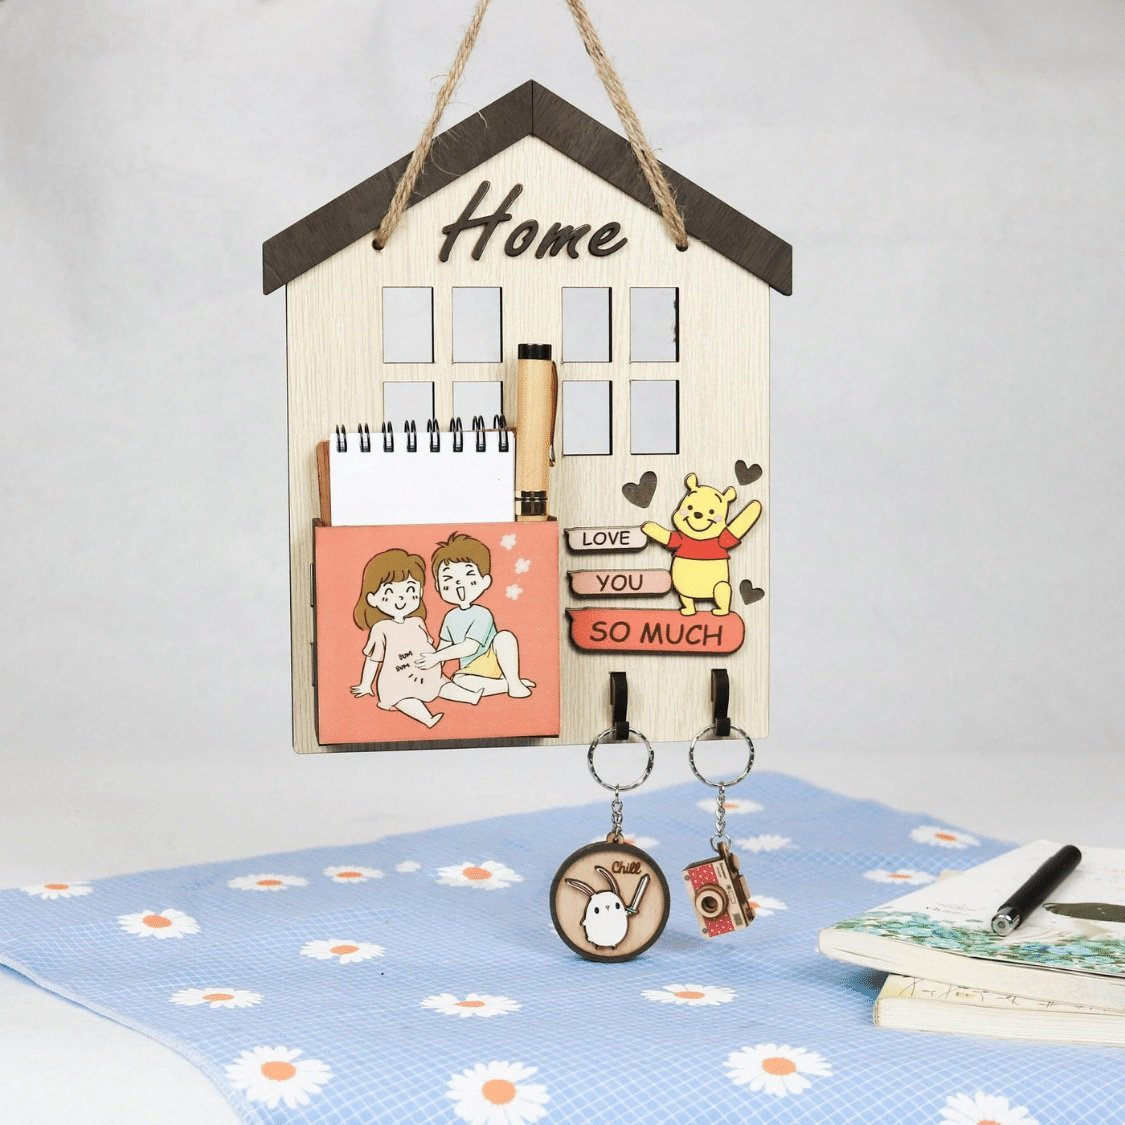 Bảng treo handmade Home love you so much